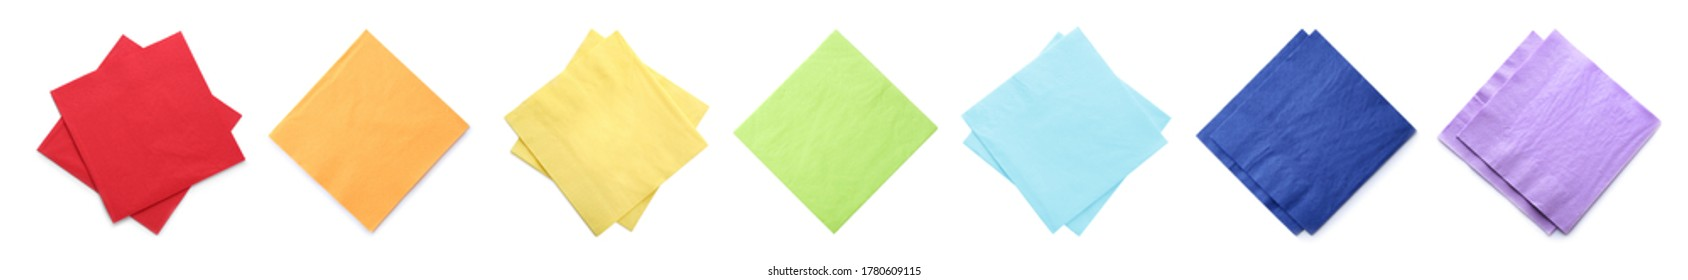 Set with colorful paper napkins on white background, top view. Banner design